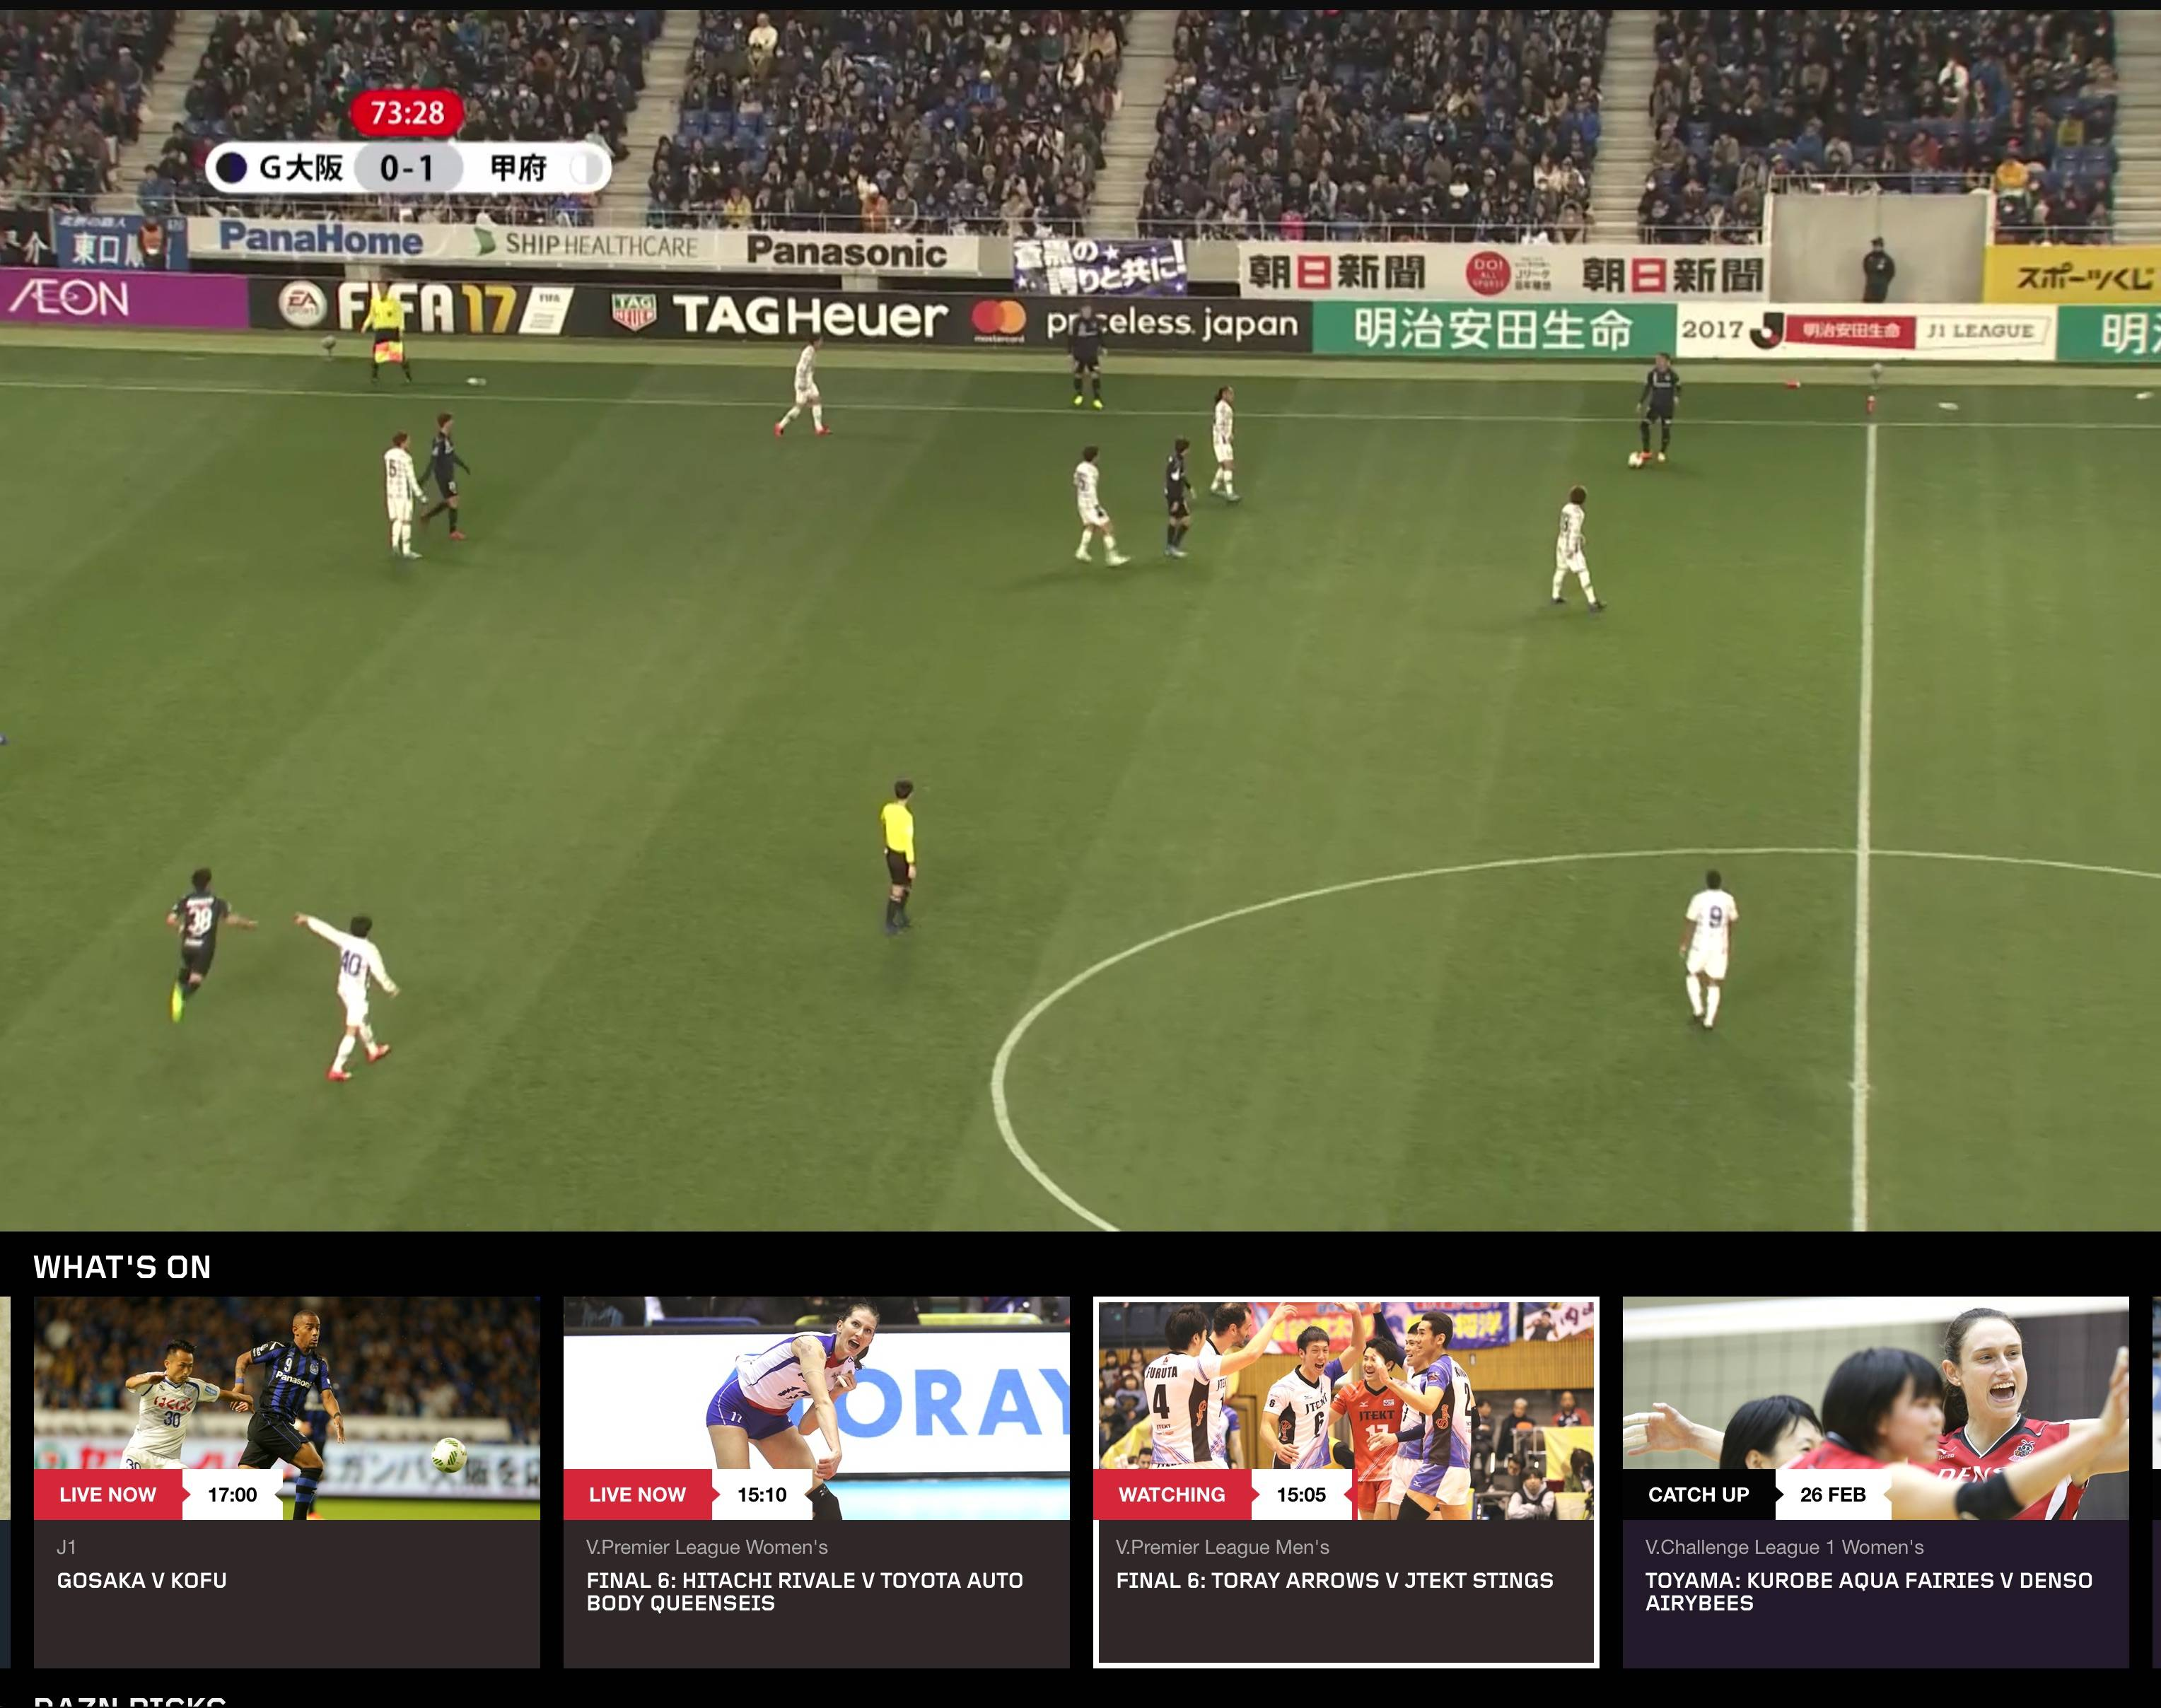 Opening weekend glitches plague J.League broadcaster DAZN